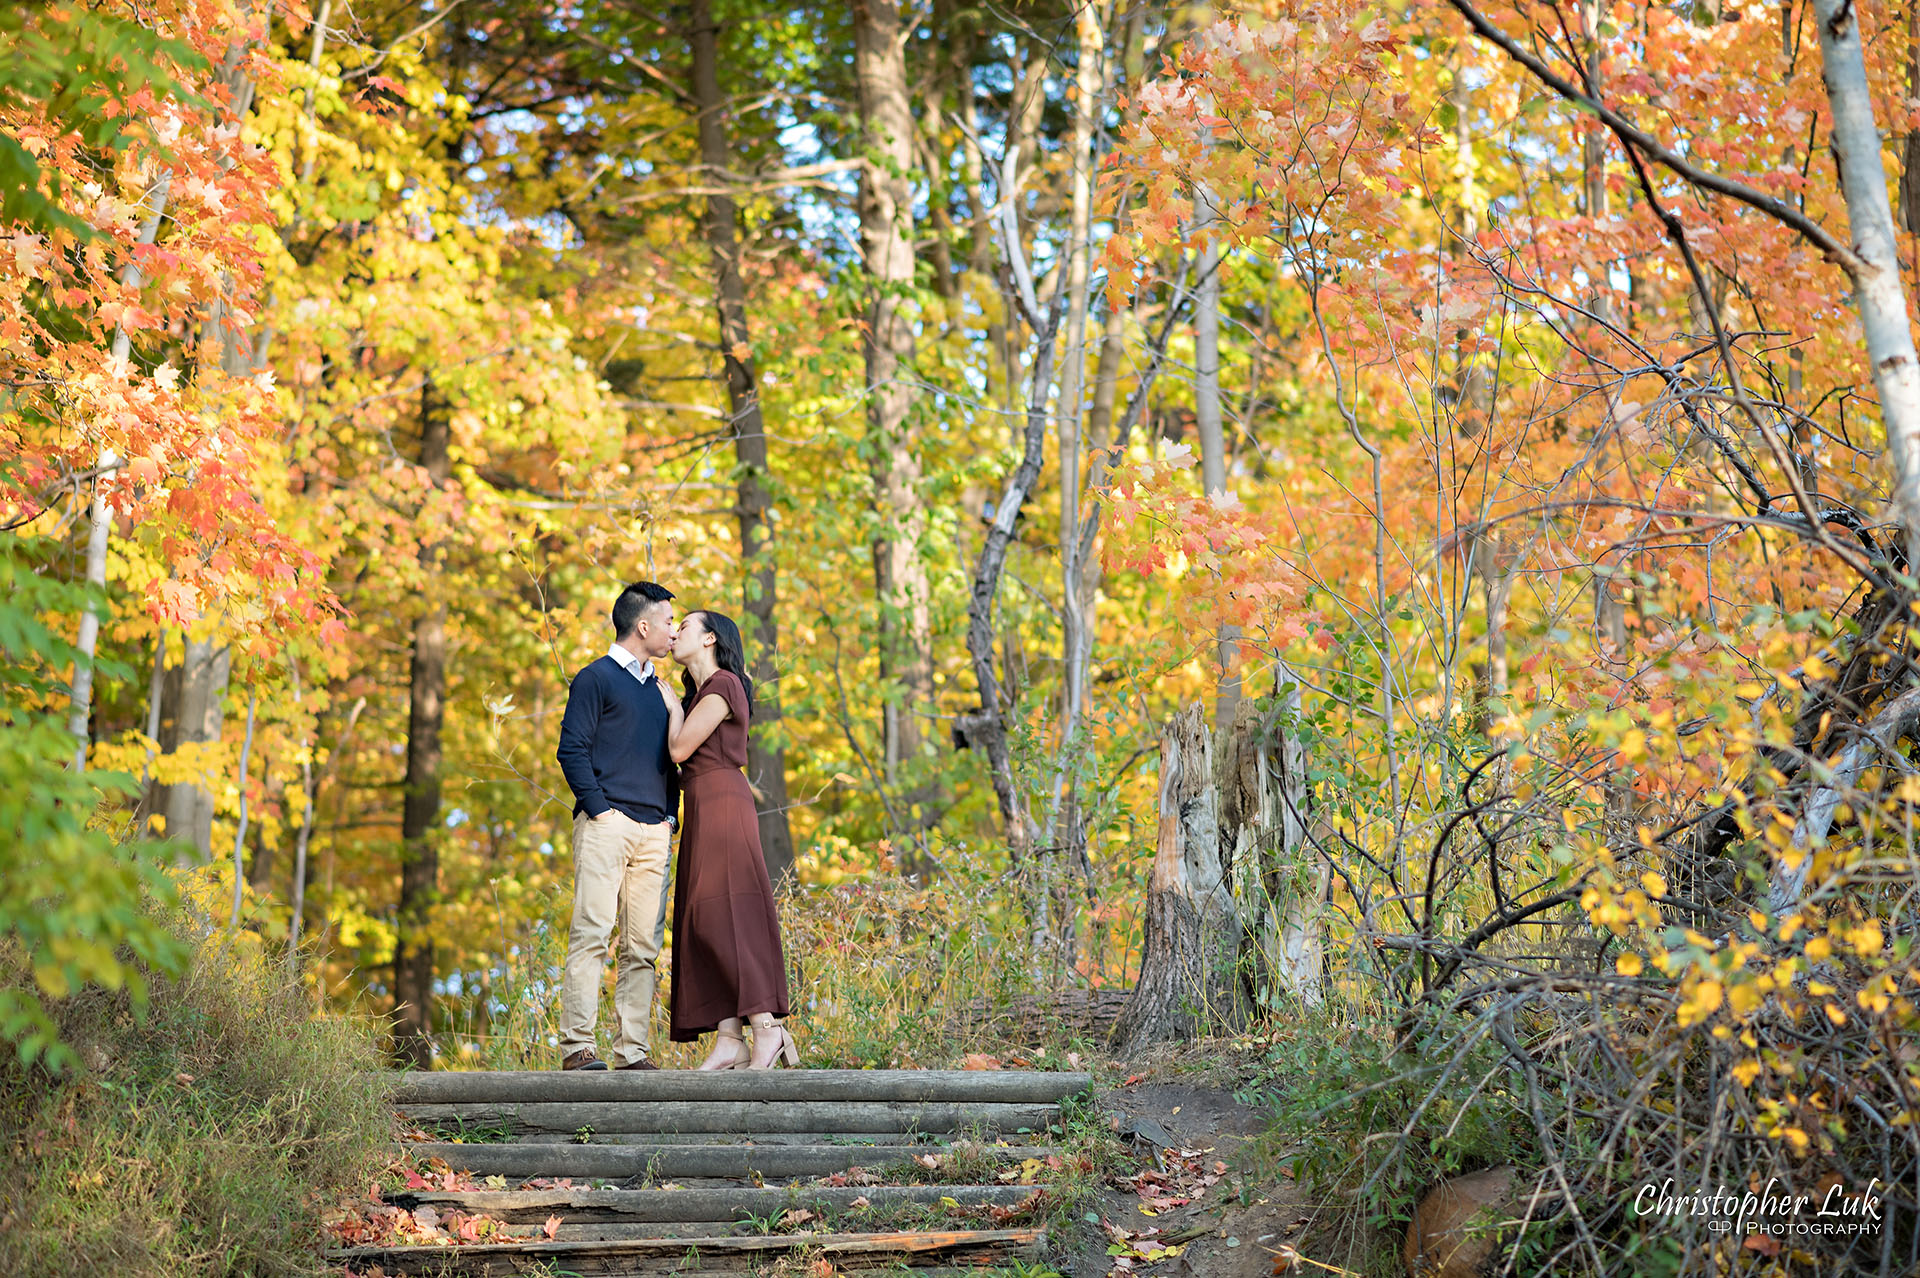 Christopher Luk Toronto Wedding Engagement Session Photographer Autumn Fall Leaves Natural Candid Photojournalistic Bride Groom Hiking Trail Trees Hug Holding Each Other Together Orange Red Yellow Kiss Wood Wooden Stairs Staircase Hiking Trail Steps